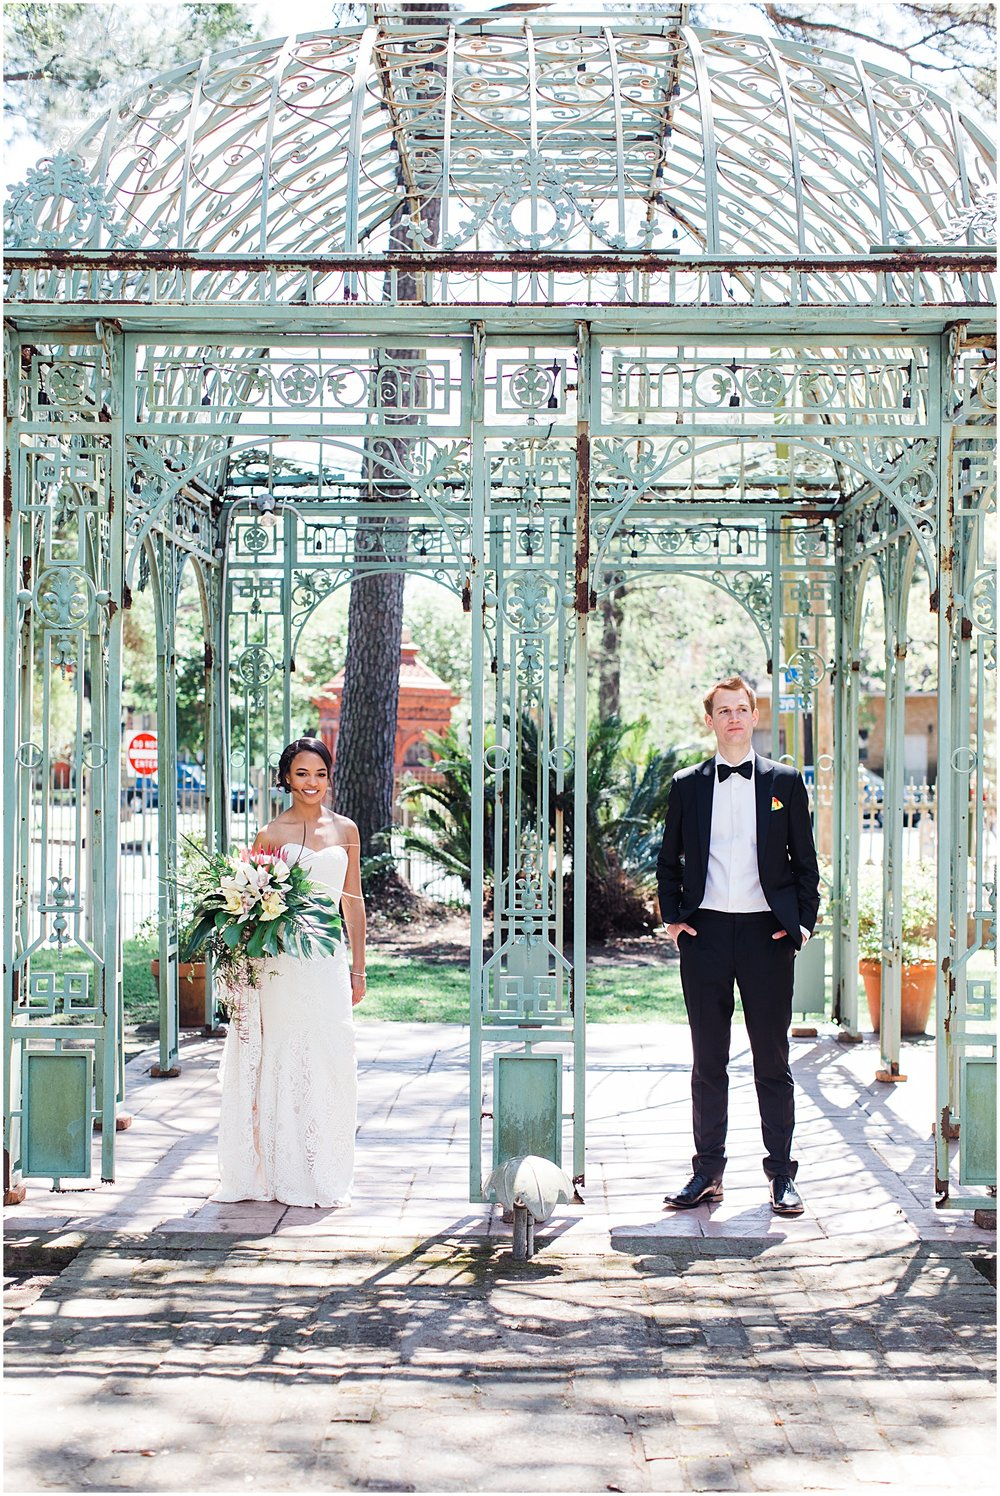 NEW ORLEANS WEDDING | BENACHI HOUSE | SARAH & MICHAEL | MARISSA CRIBBS PHOTOGRAPHY_4413.jpg